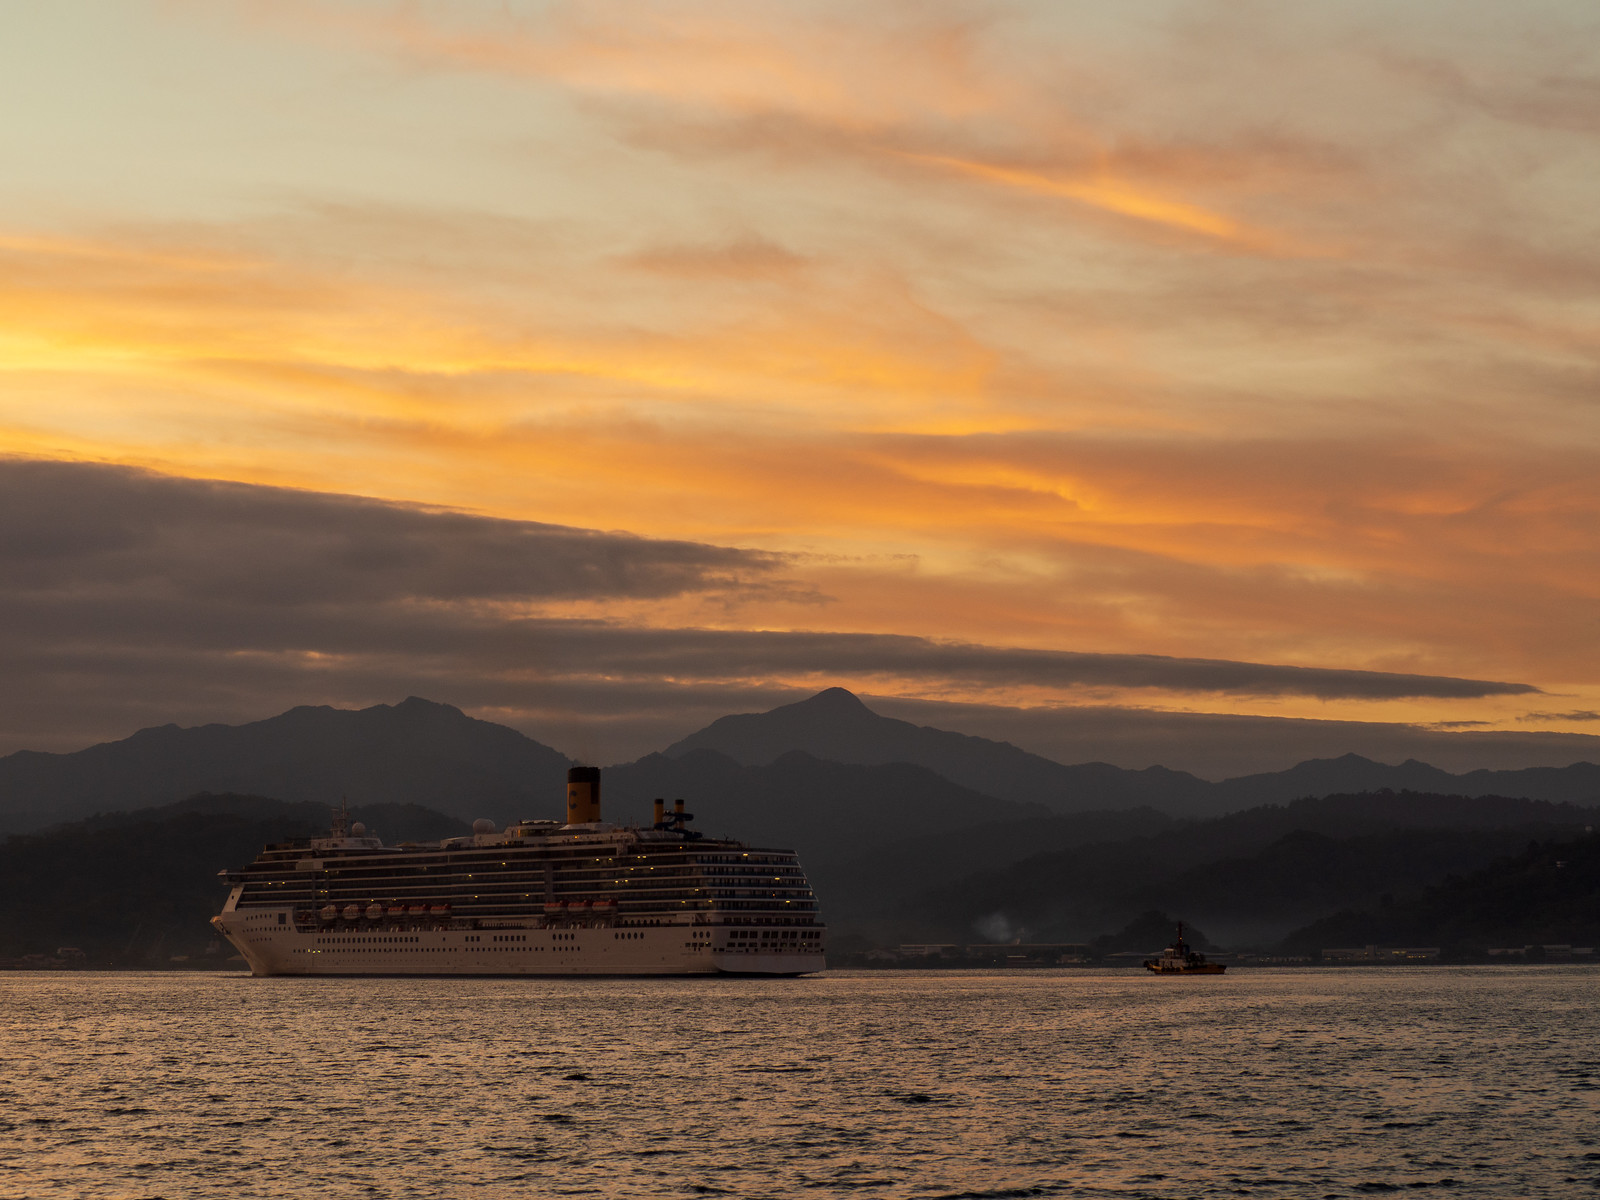 Cruise ship passing in Subic